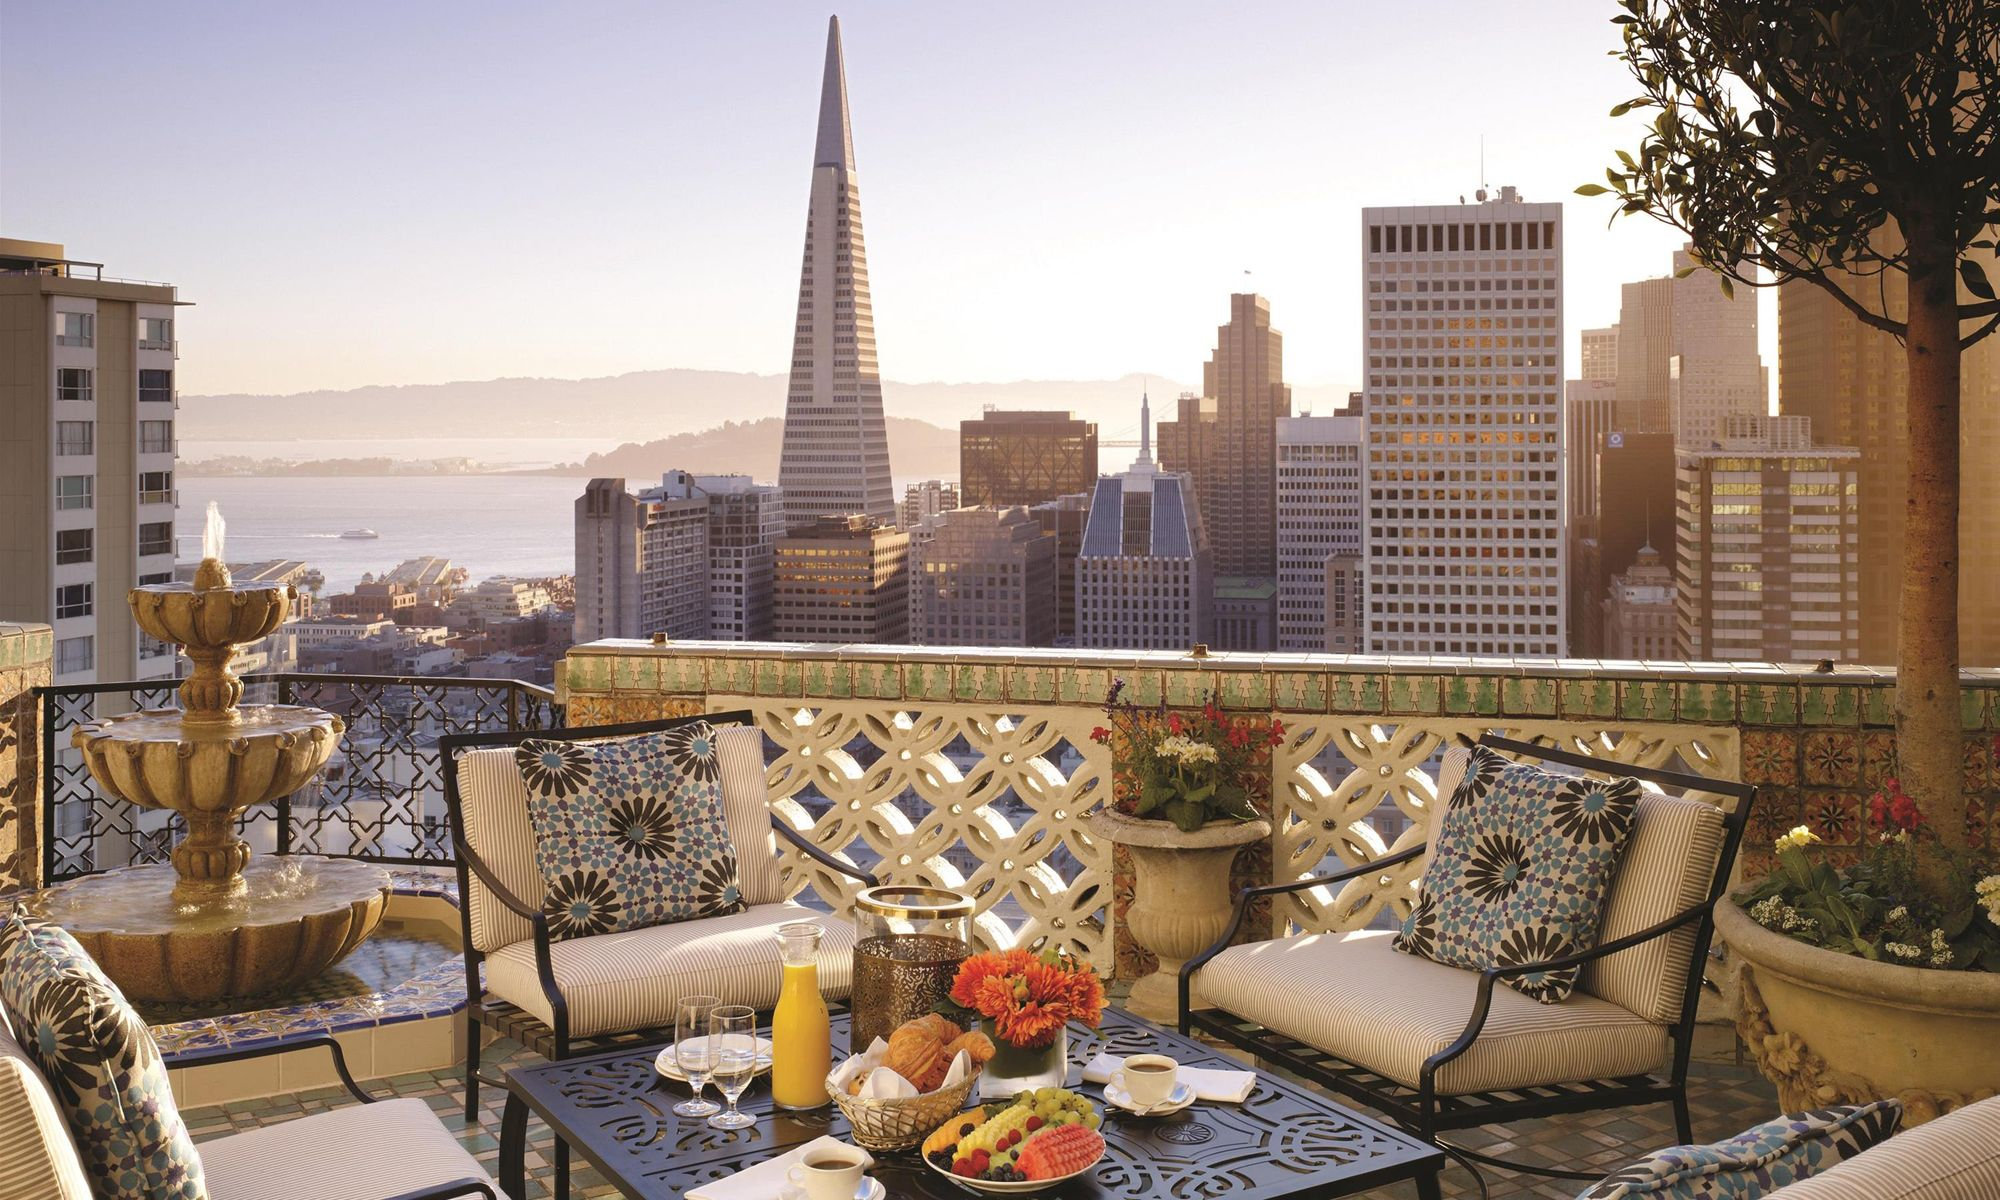 The San Francisco Hotel You Need to Visit